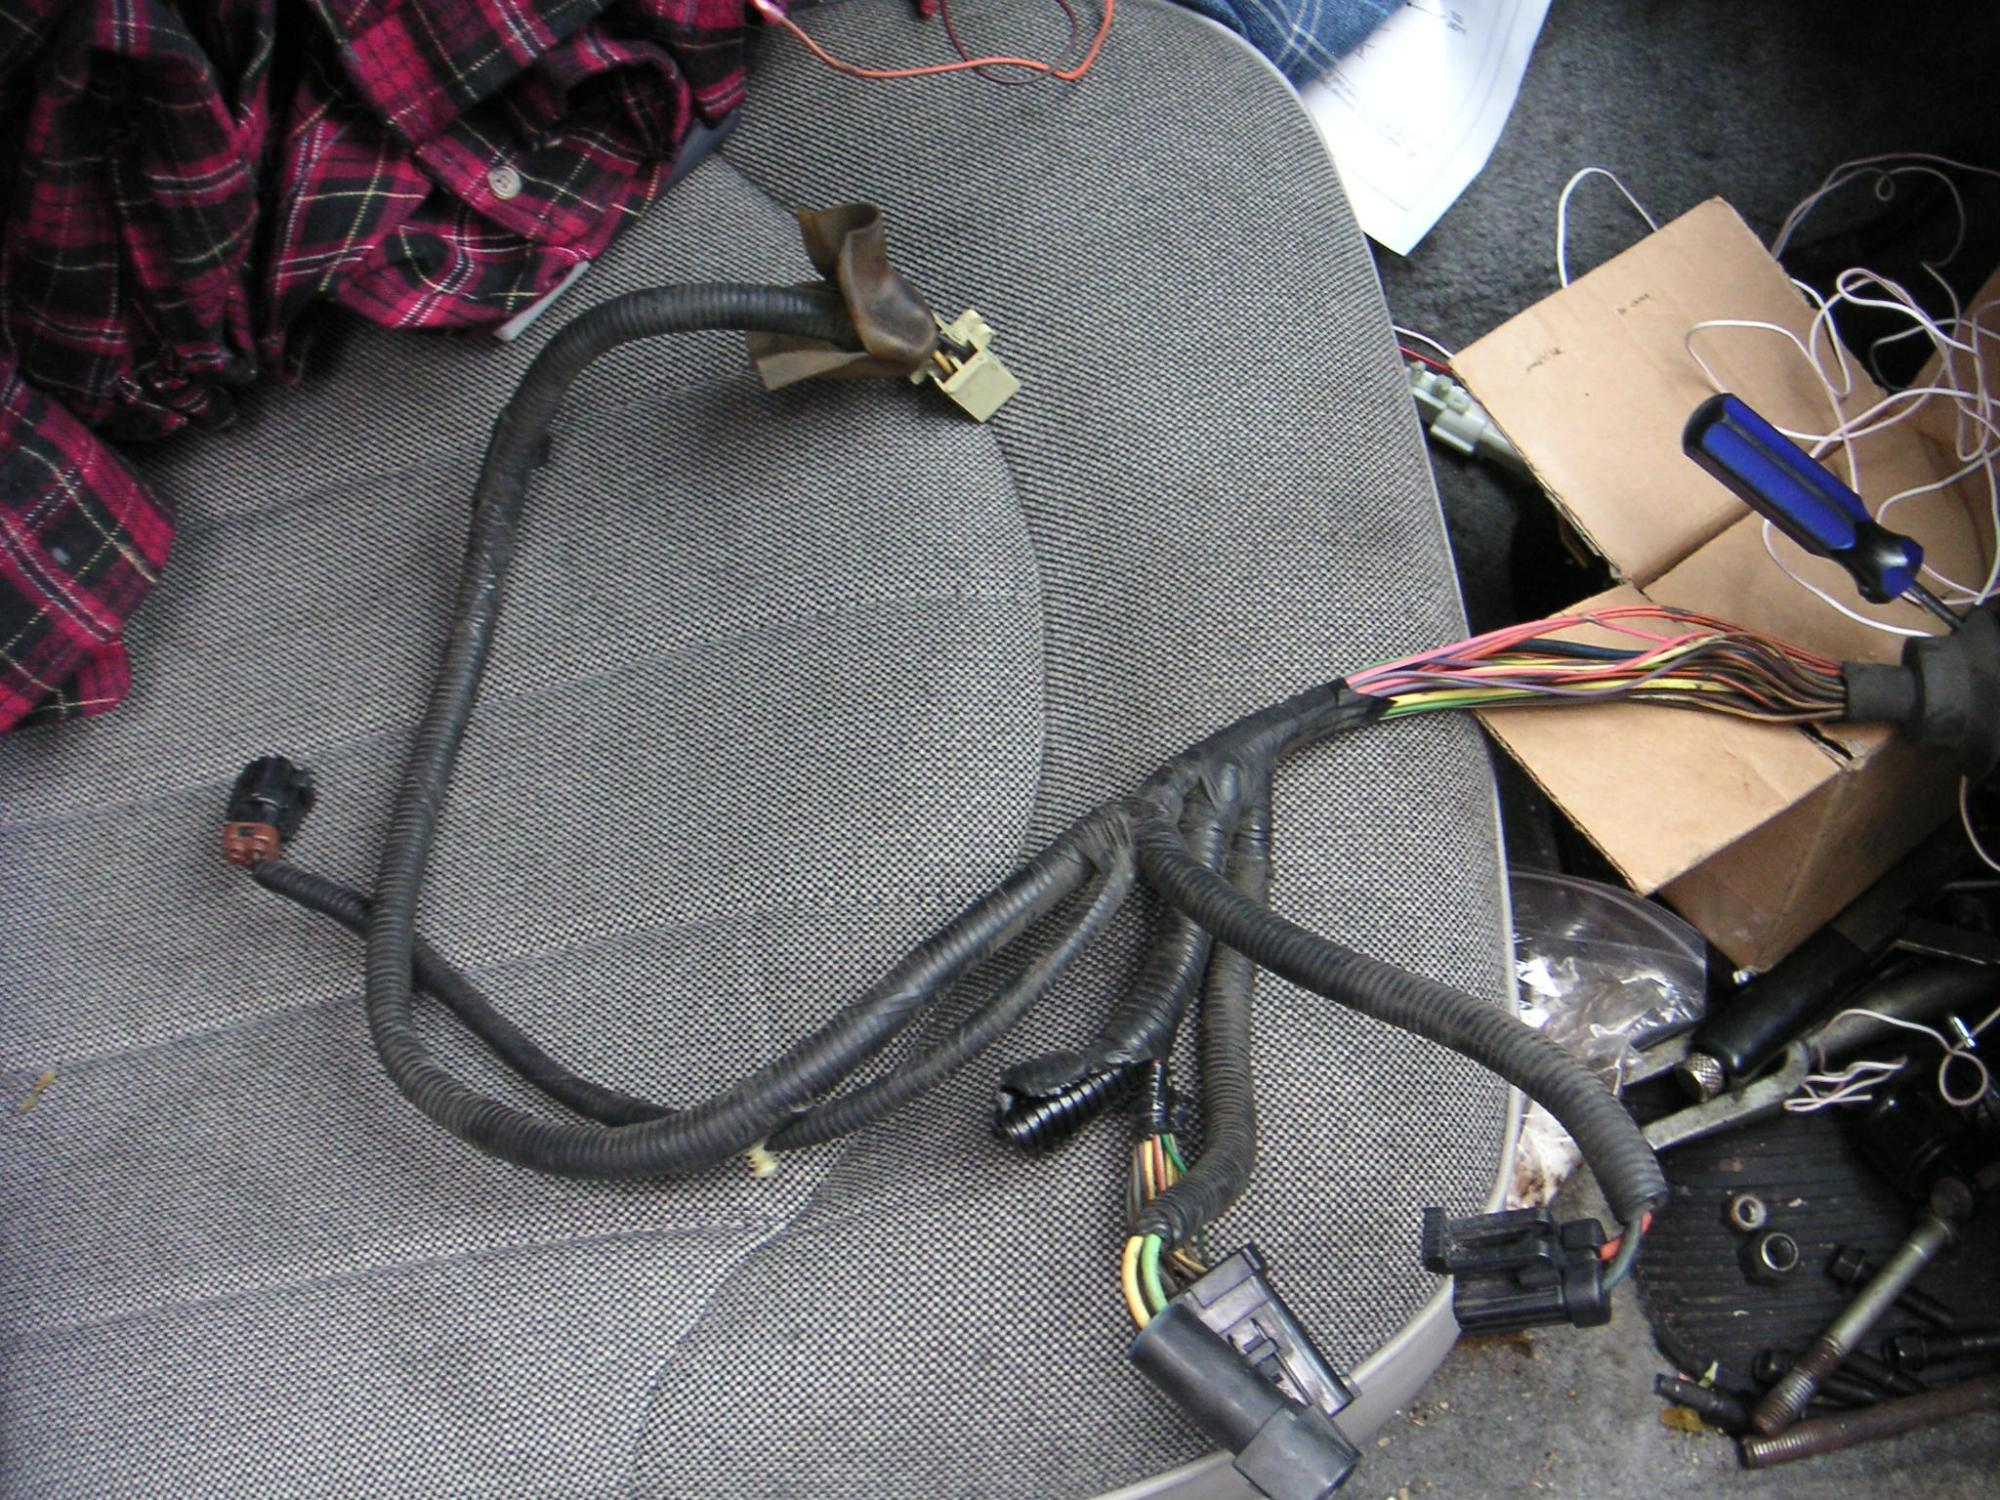 hight resolution of here s the damaged area of the wiring harness with the friction tape removed